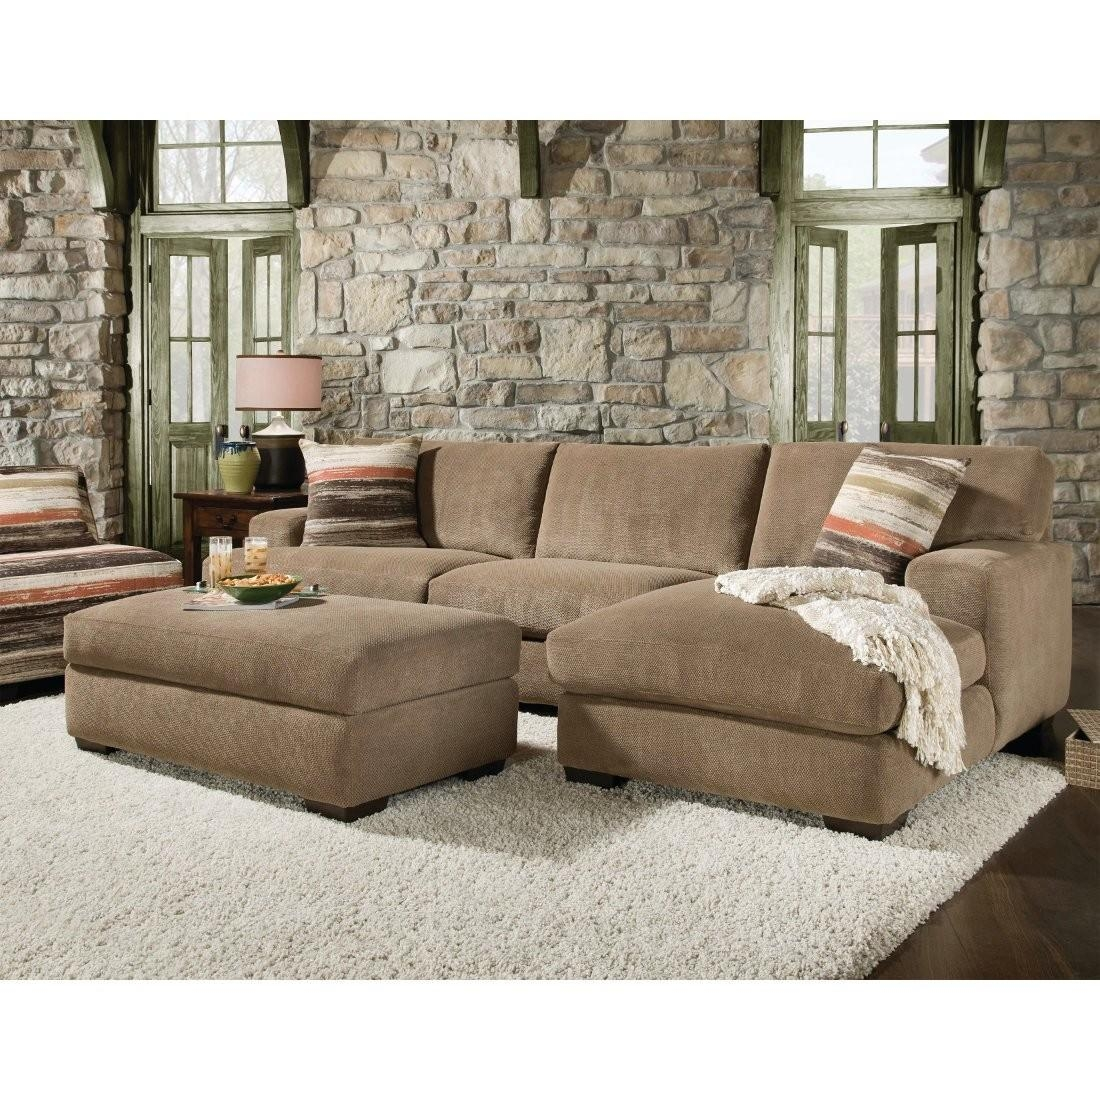 2 Piece Sectional Sofa With Chaise Design | Homesfeed Intended For Sectional Sofa With 2 Chaises (View 9 of 20)